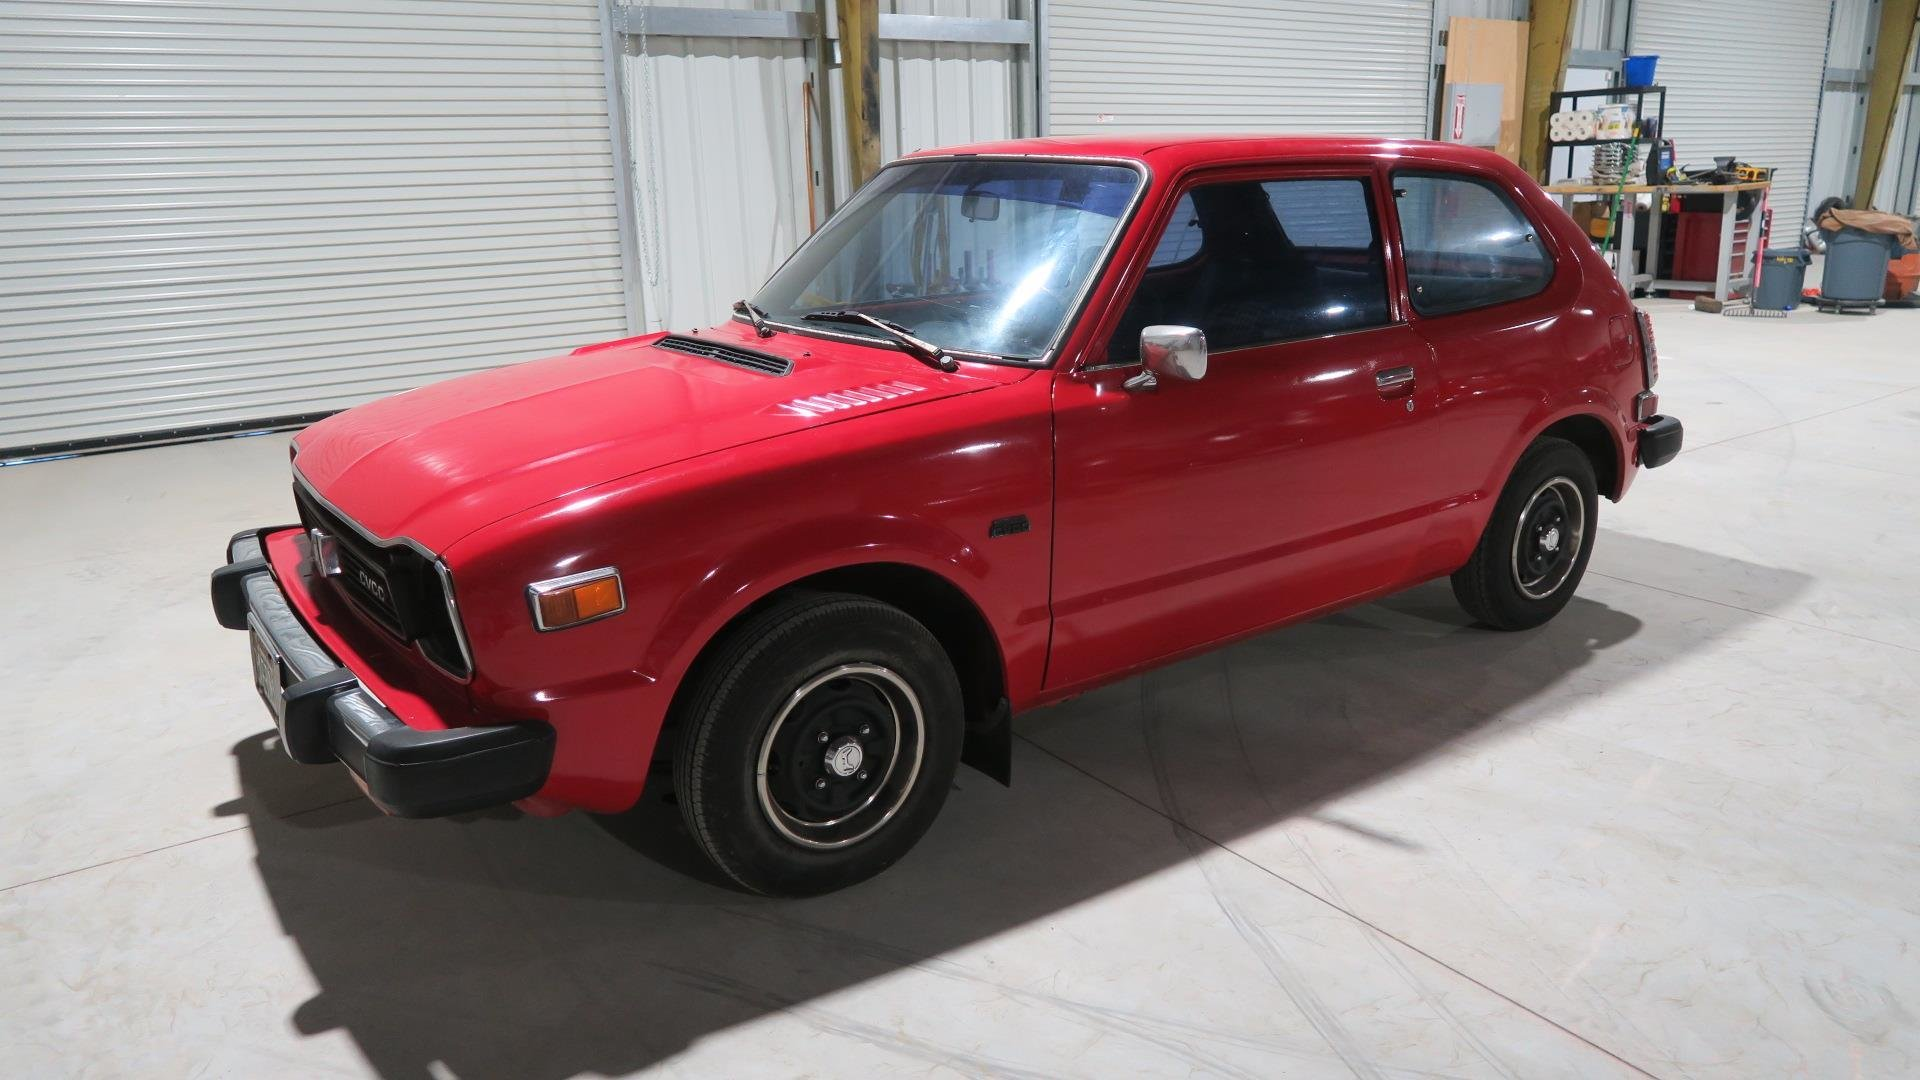 1978 Honda CVCC Dry Cali Clean Car Red(~)Black Manual  $6.9k For Sale (picture 1 of 6)